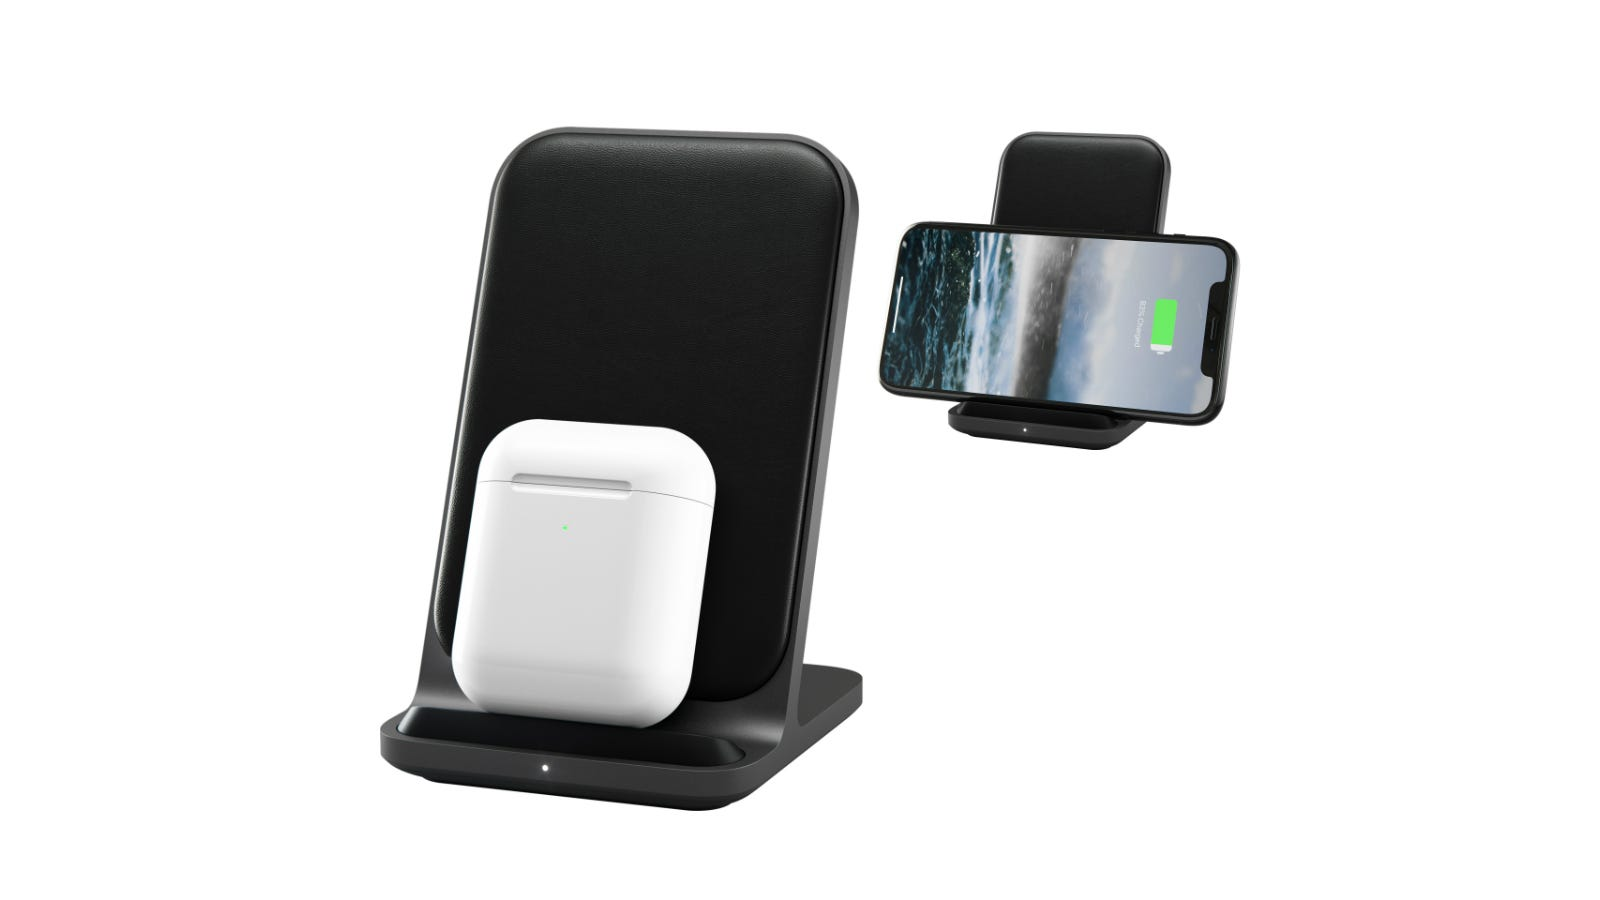 Nomad Base Station Stand charging AirPods and an iPhone